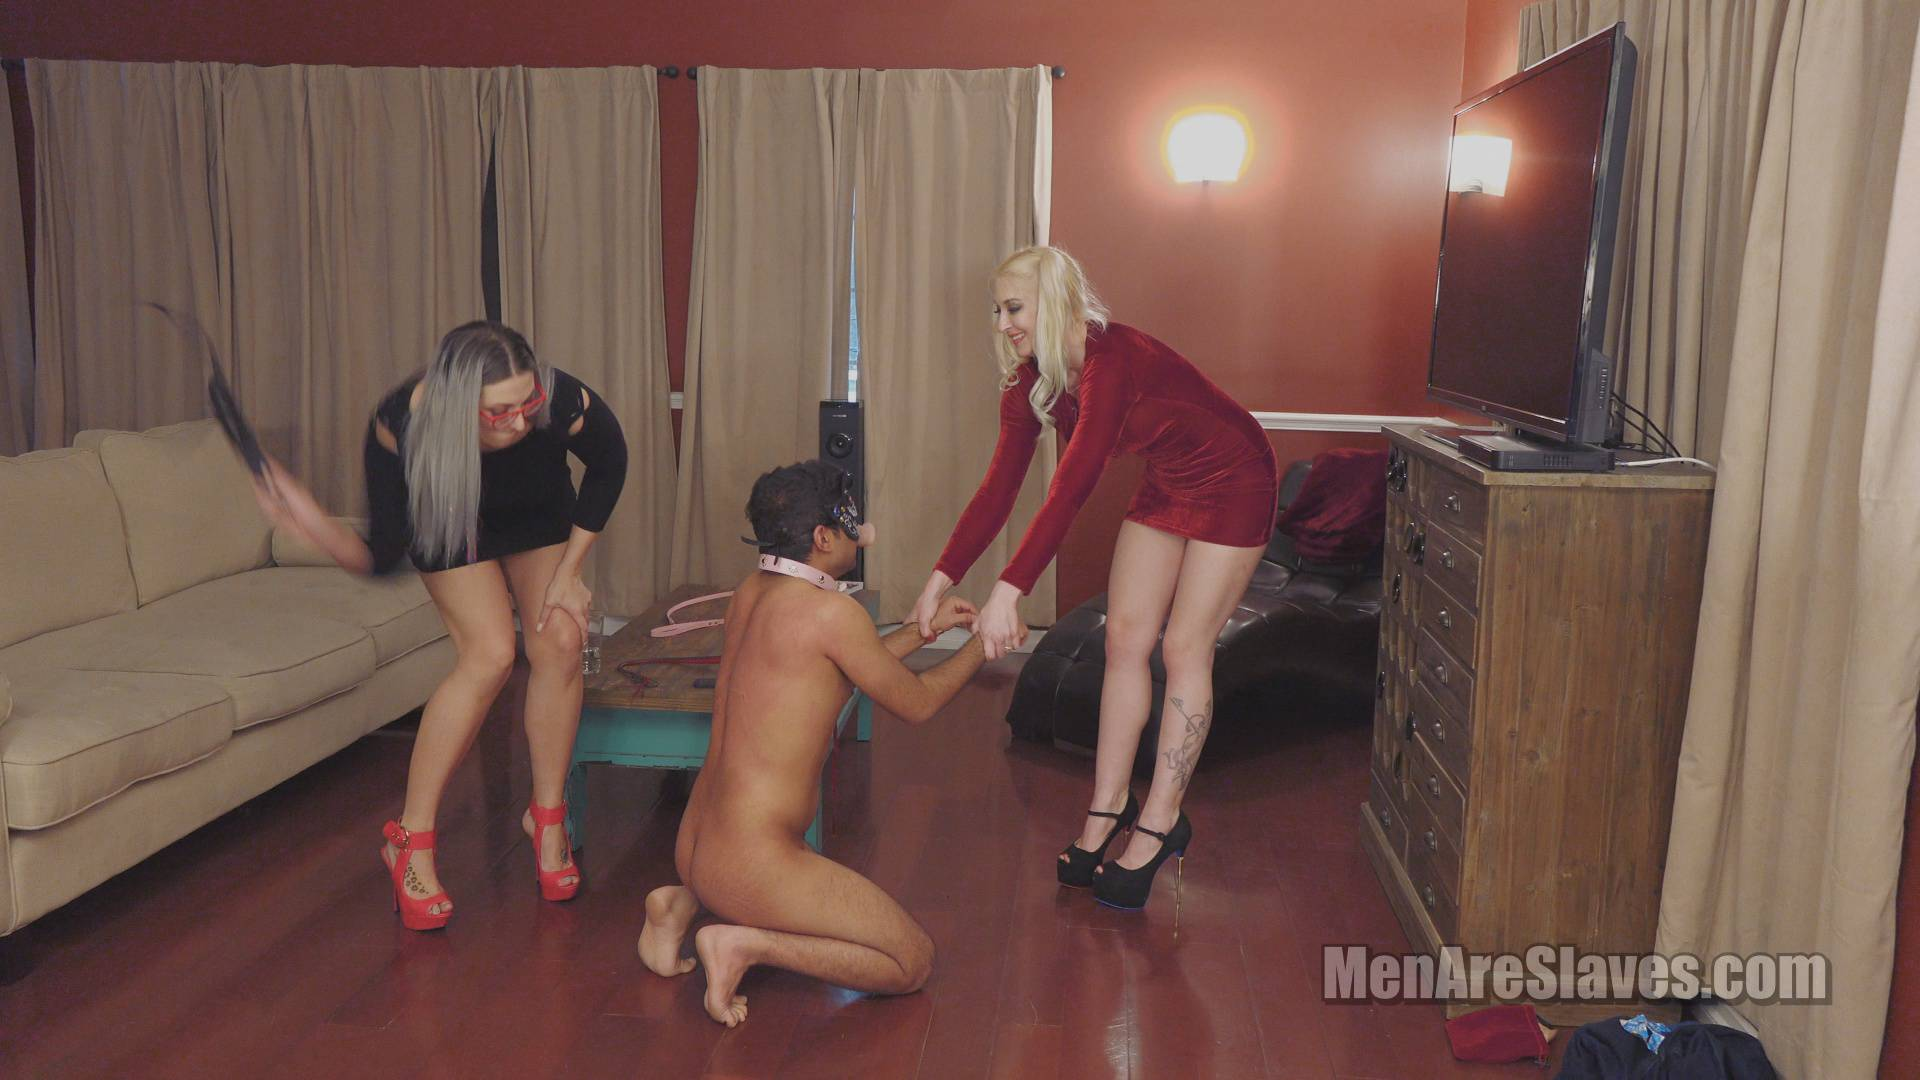 confessions-wife-wants-a-threesome